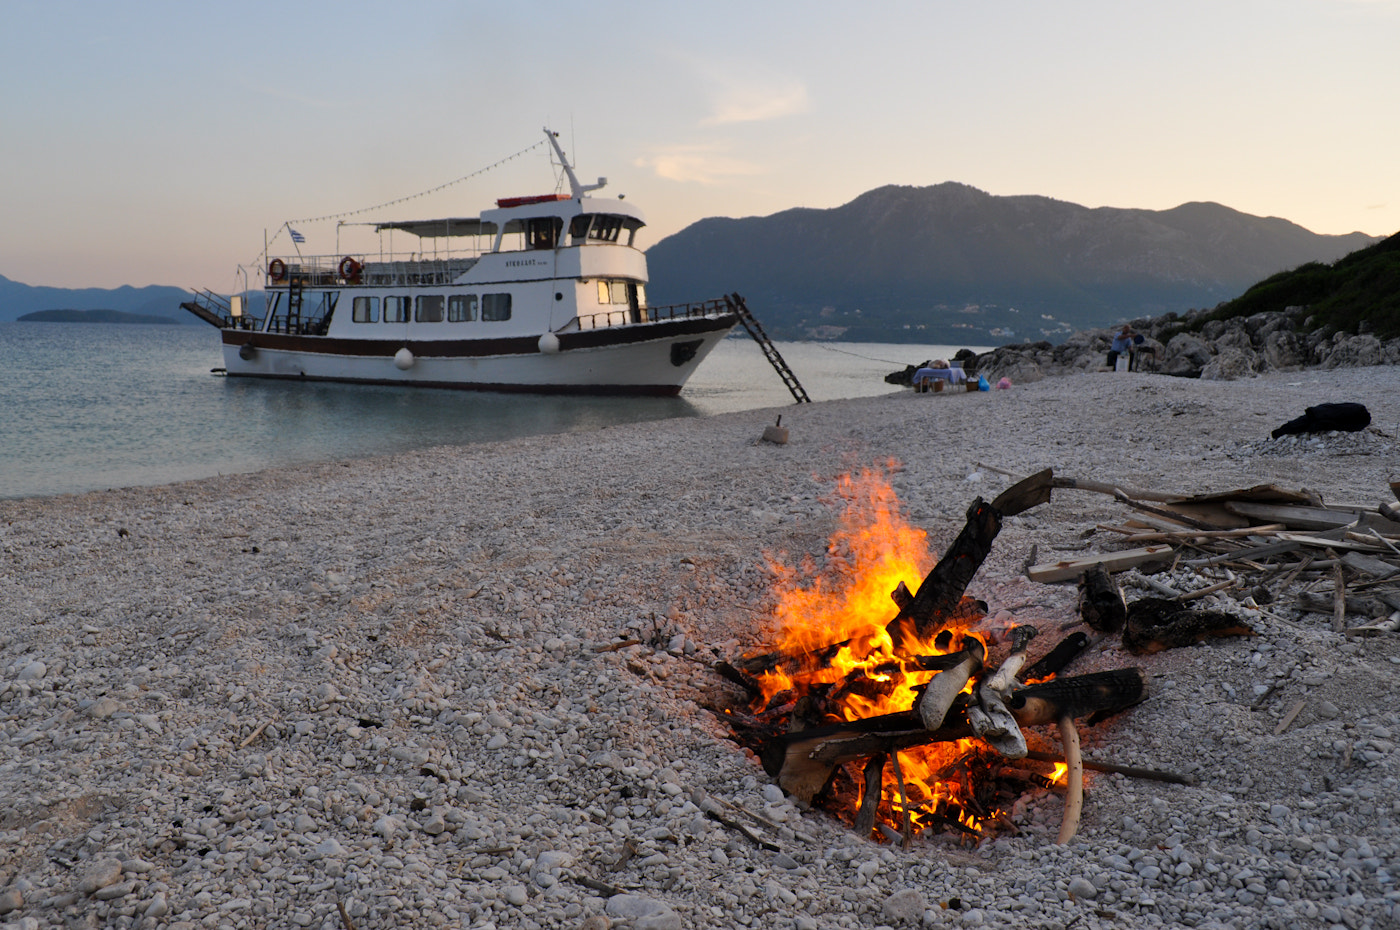 Photograph Boat and Fire by Jon Starling on 500px